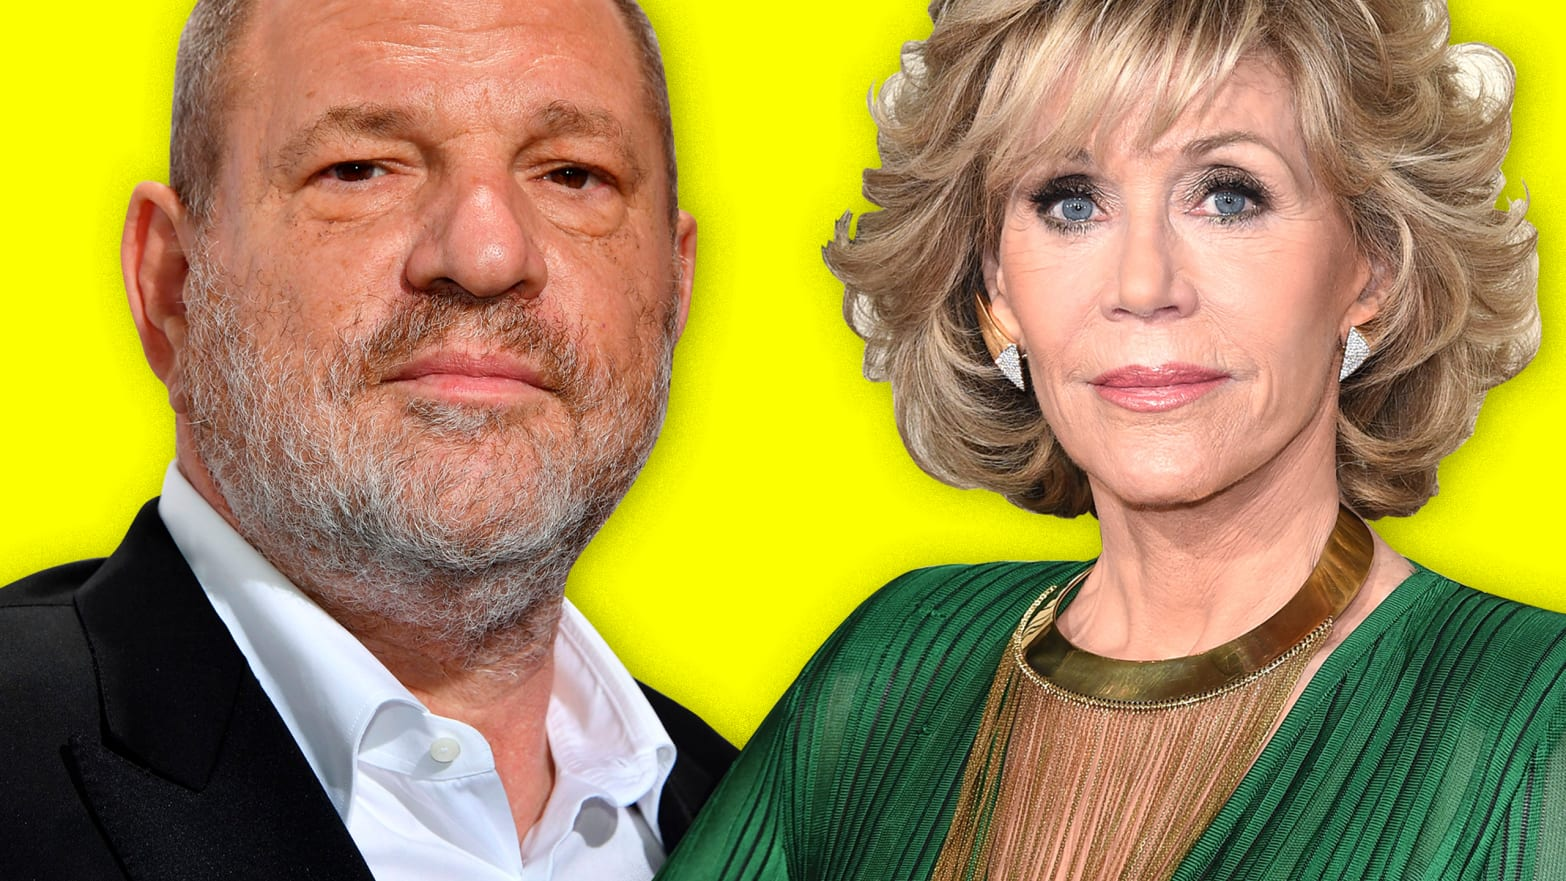 Jane Fonda Gets It: Weinstein's Victims Are White and Famous, and That's Why We Care